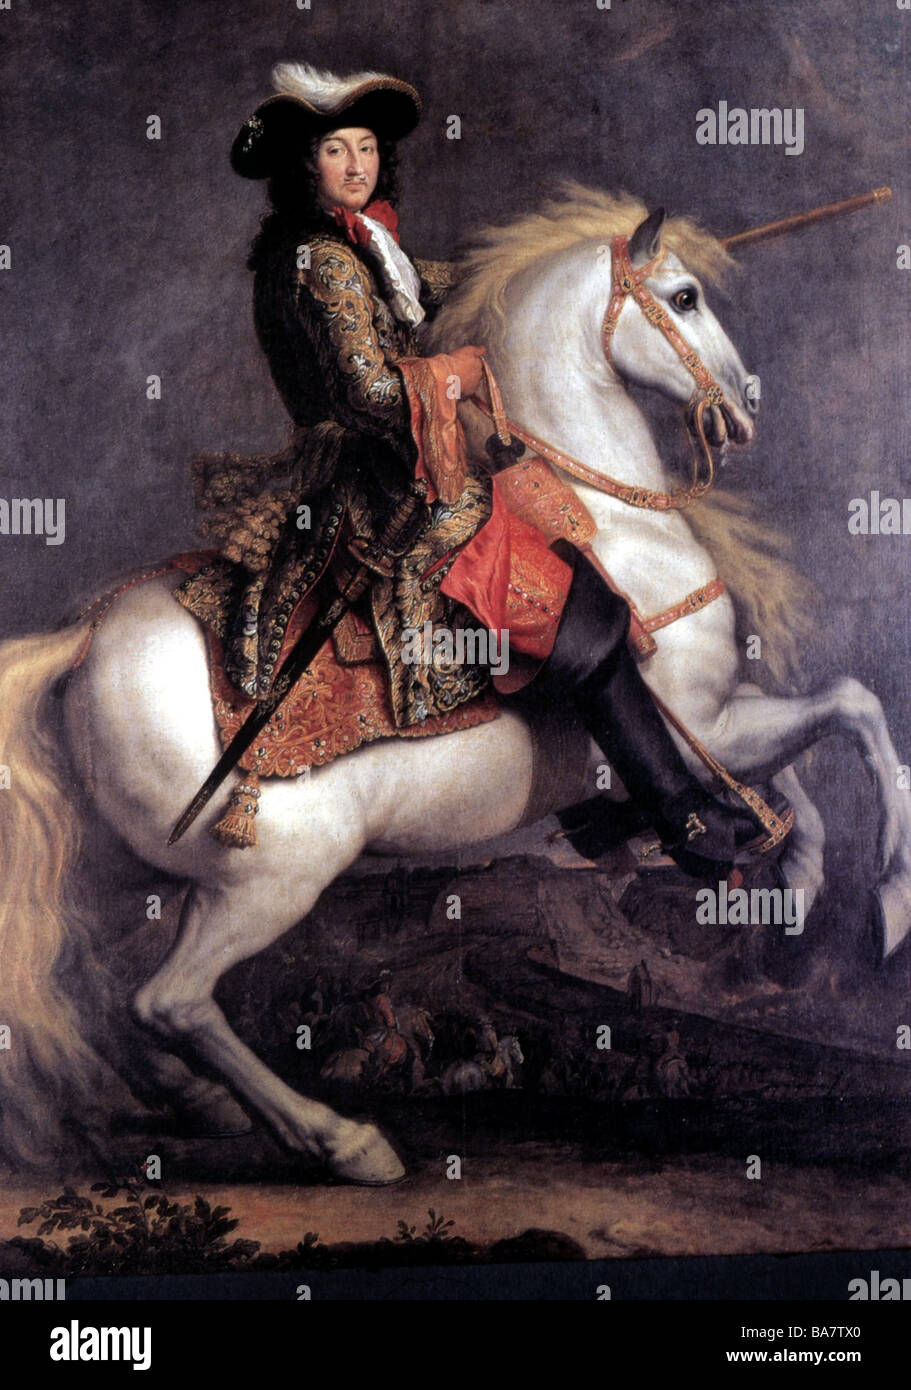 Louis XIV, 5.9.1638 - 1.9.1715, King of France 1643 - 1715, riding, painting by Rene Antoine Houasse, 1679, Musee - Stock Image